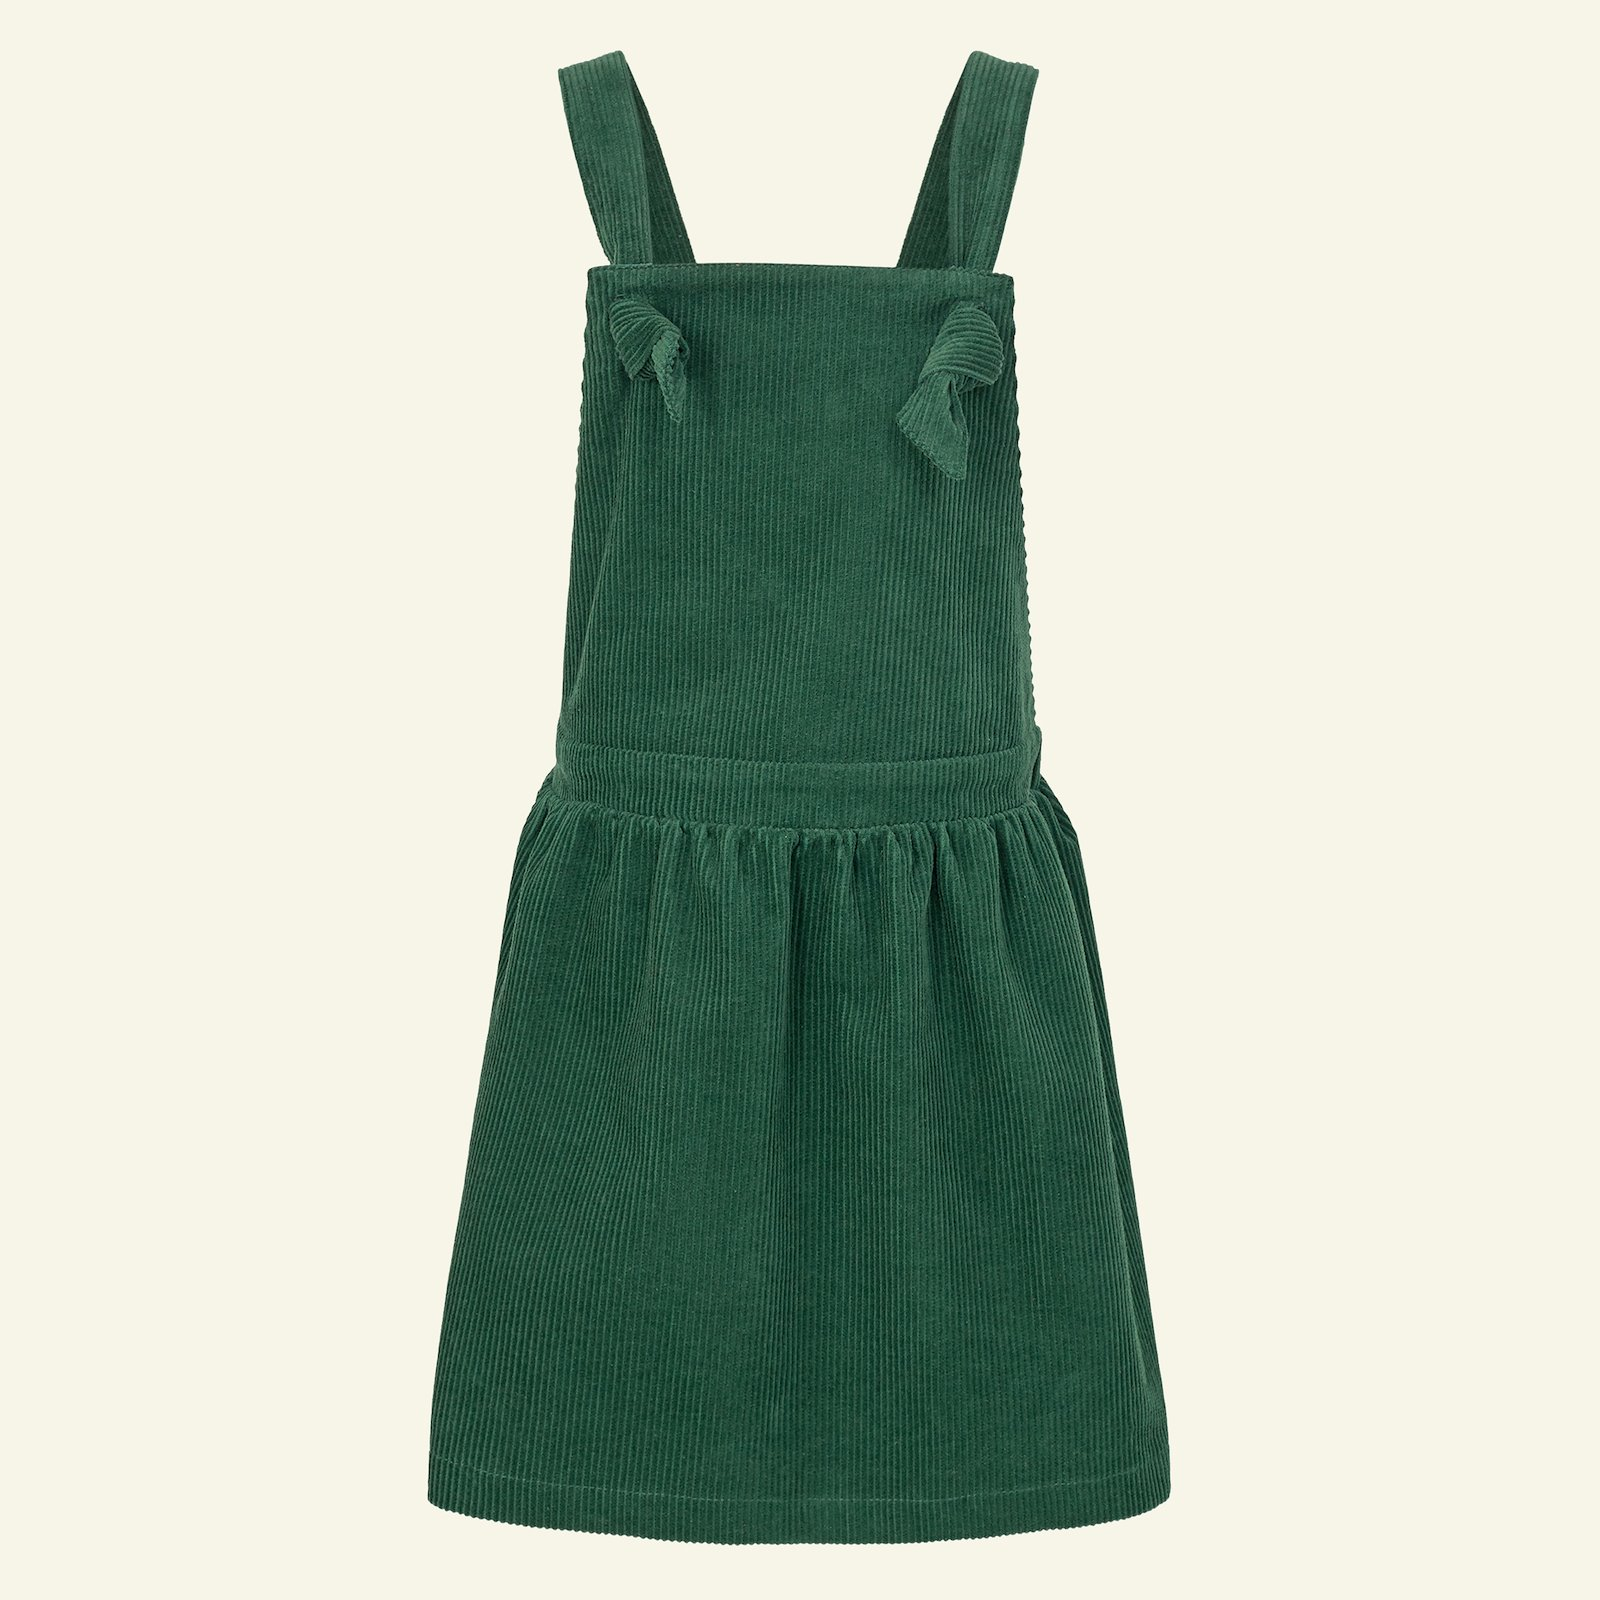 Overalls, shorts, pinafore, 128/8y p60029_430819_sskit